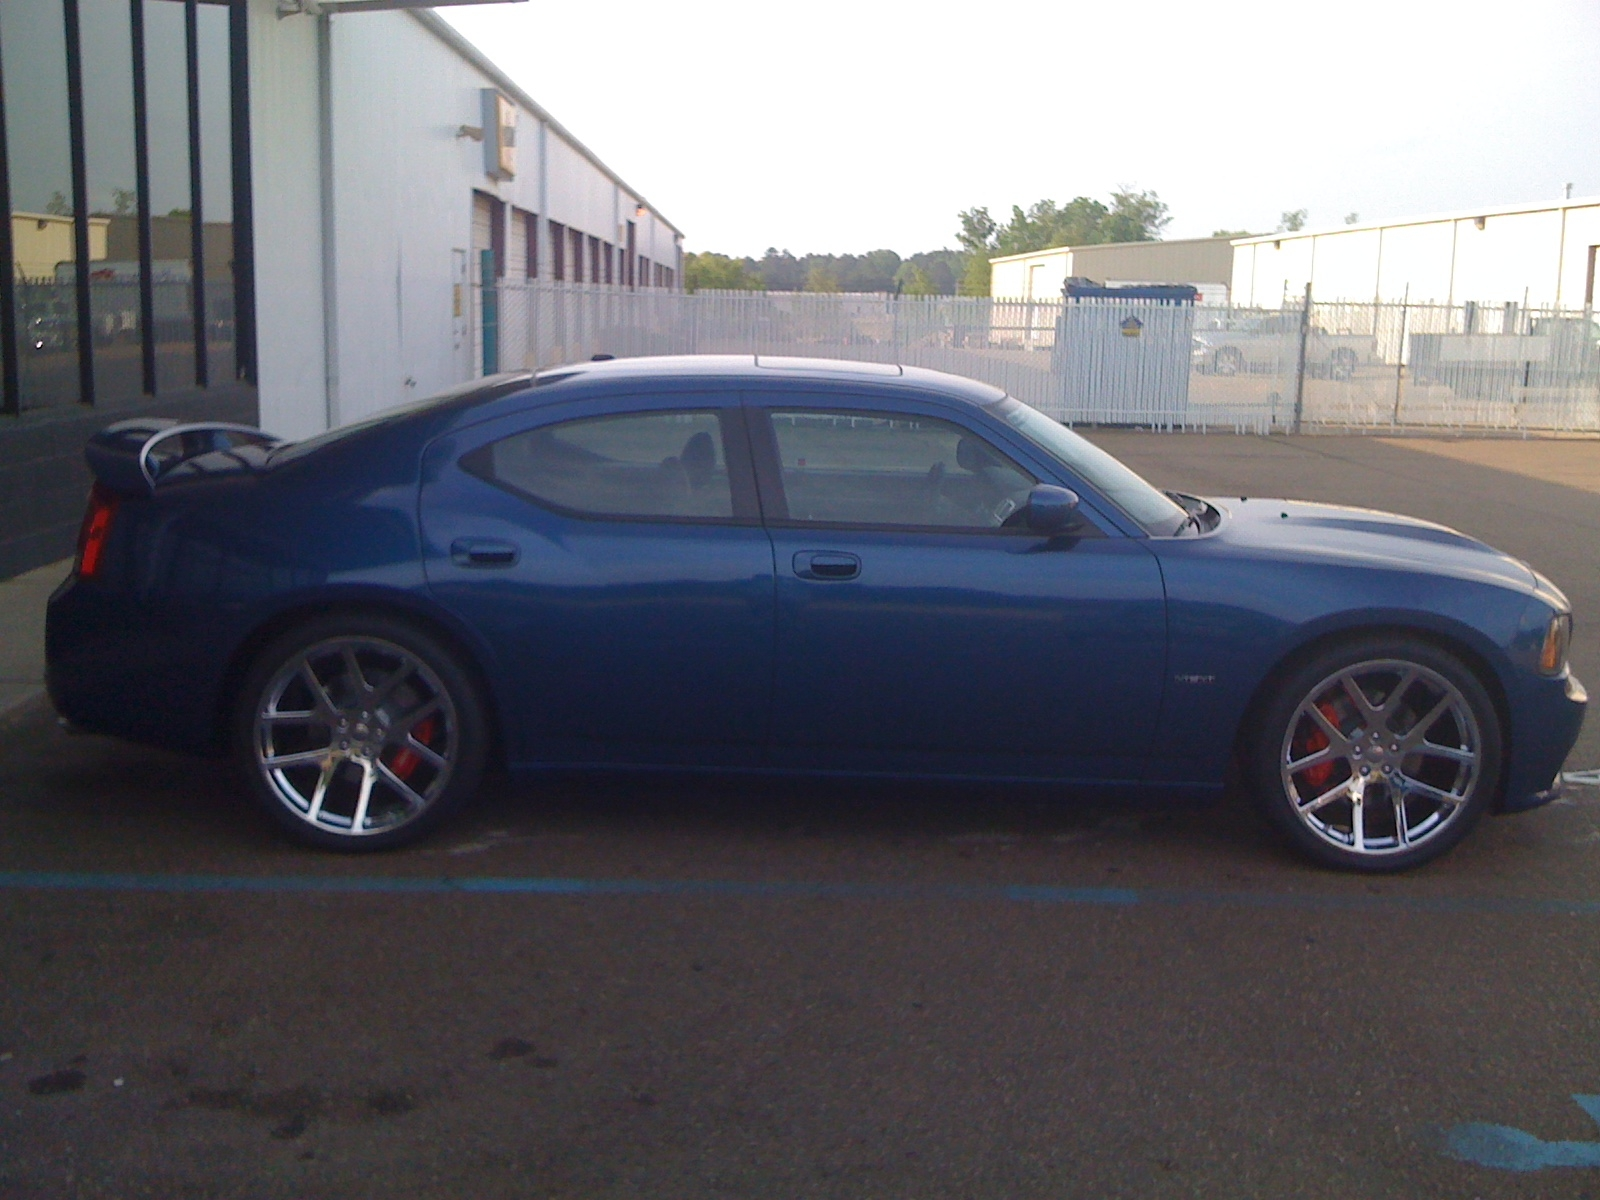 Ew31983 2010 dodge chargersrt8 specs photos modification info at ew31983 2010 dodge charger 38933074002original sciox Choice Image